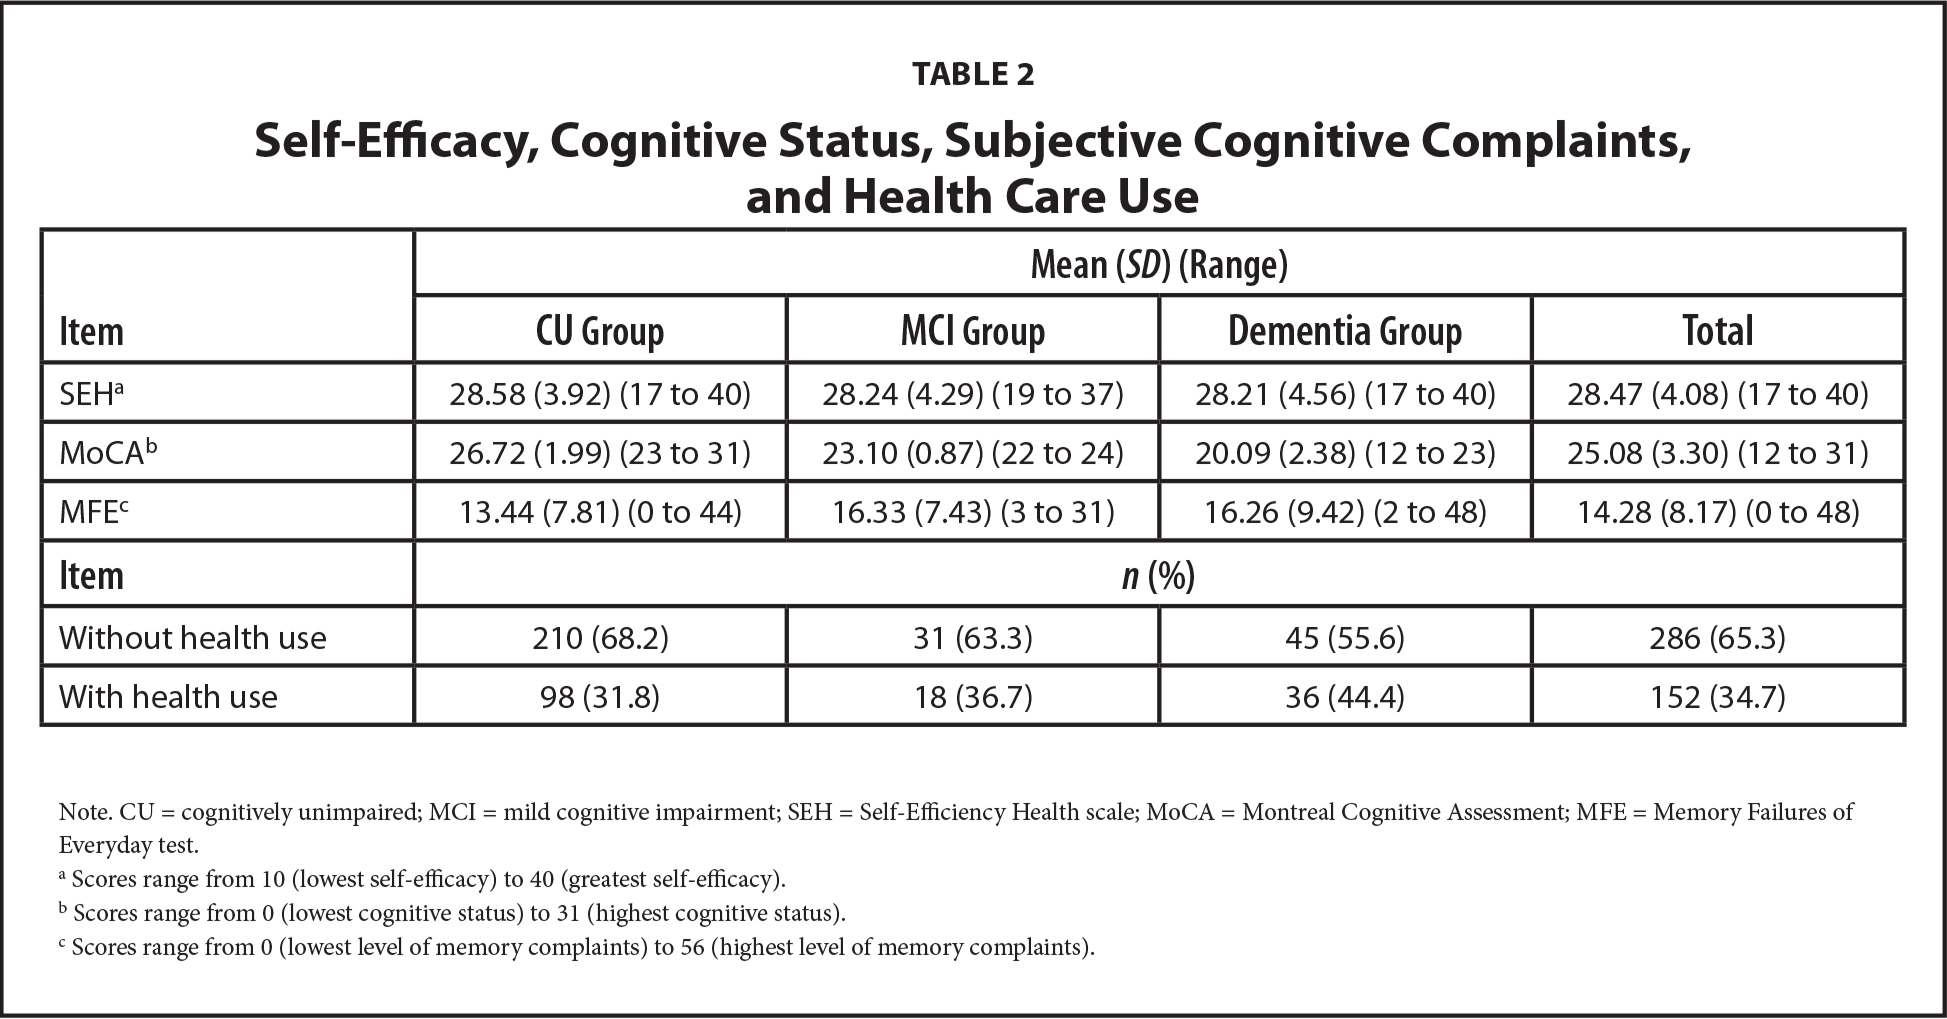 Self-Efficacy, Cognitive Status, Subjective Cognitive Complaints, and Health Care Use